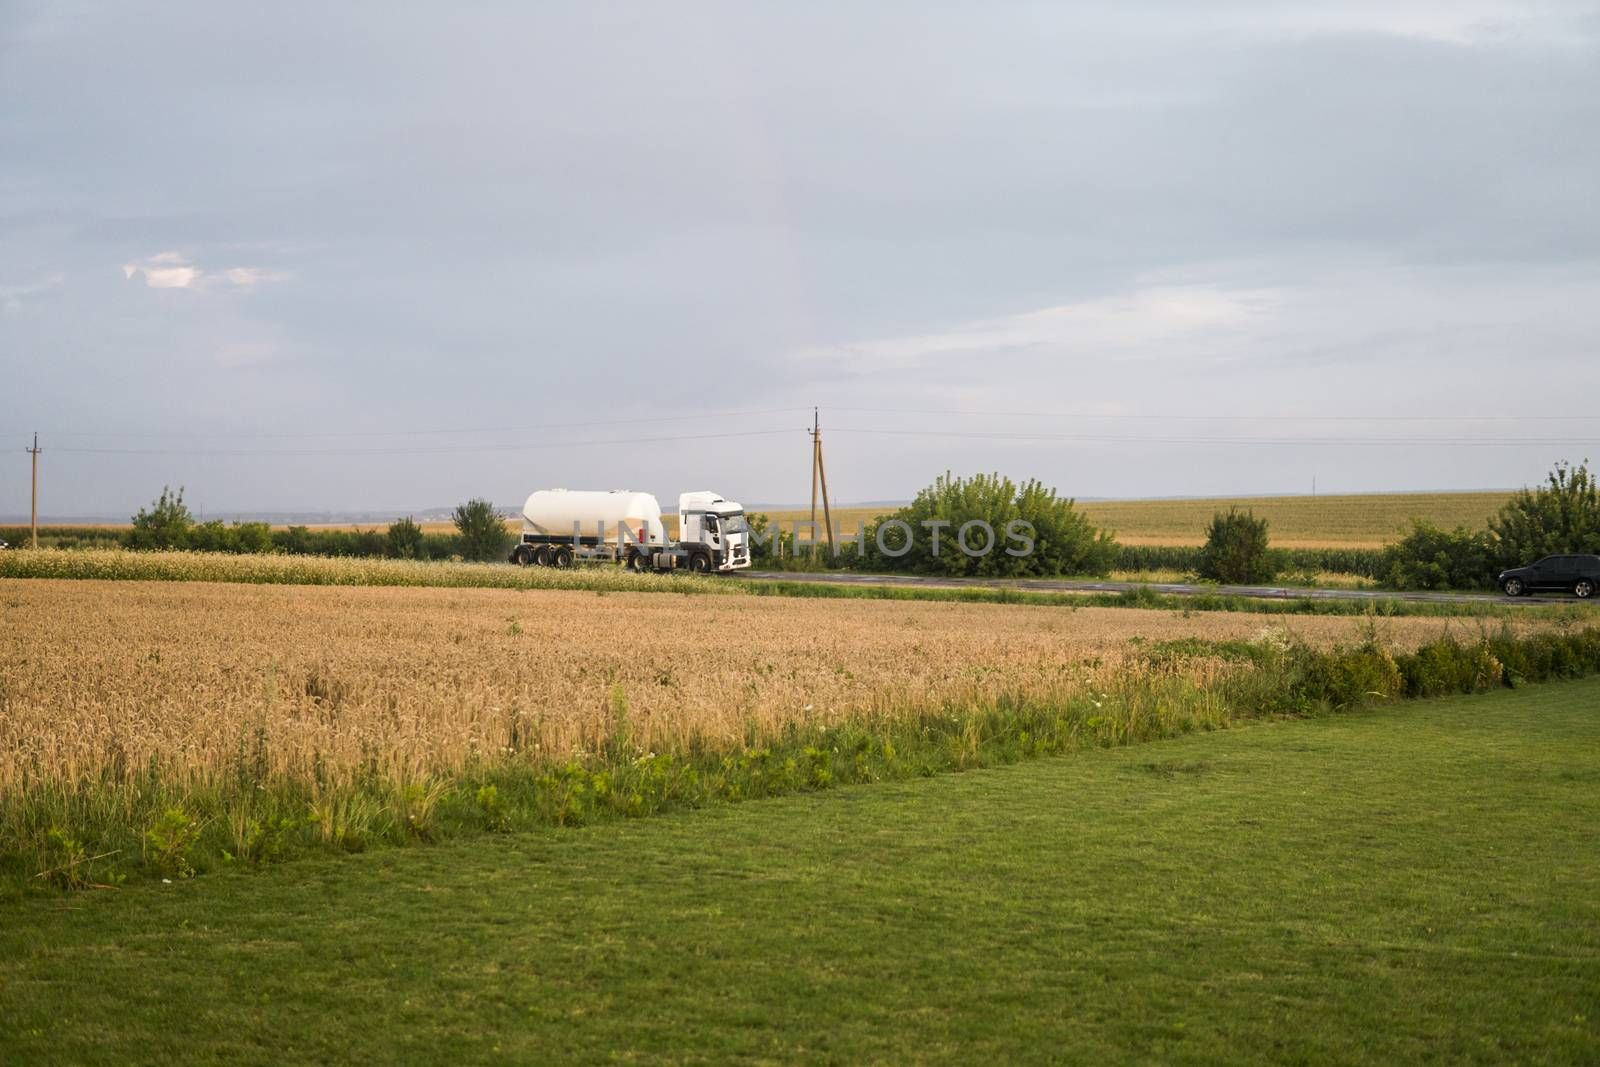 Truck on the road moving through wheat fields. Transportation